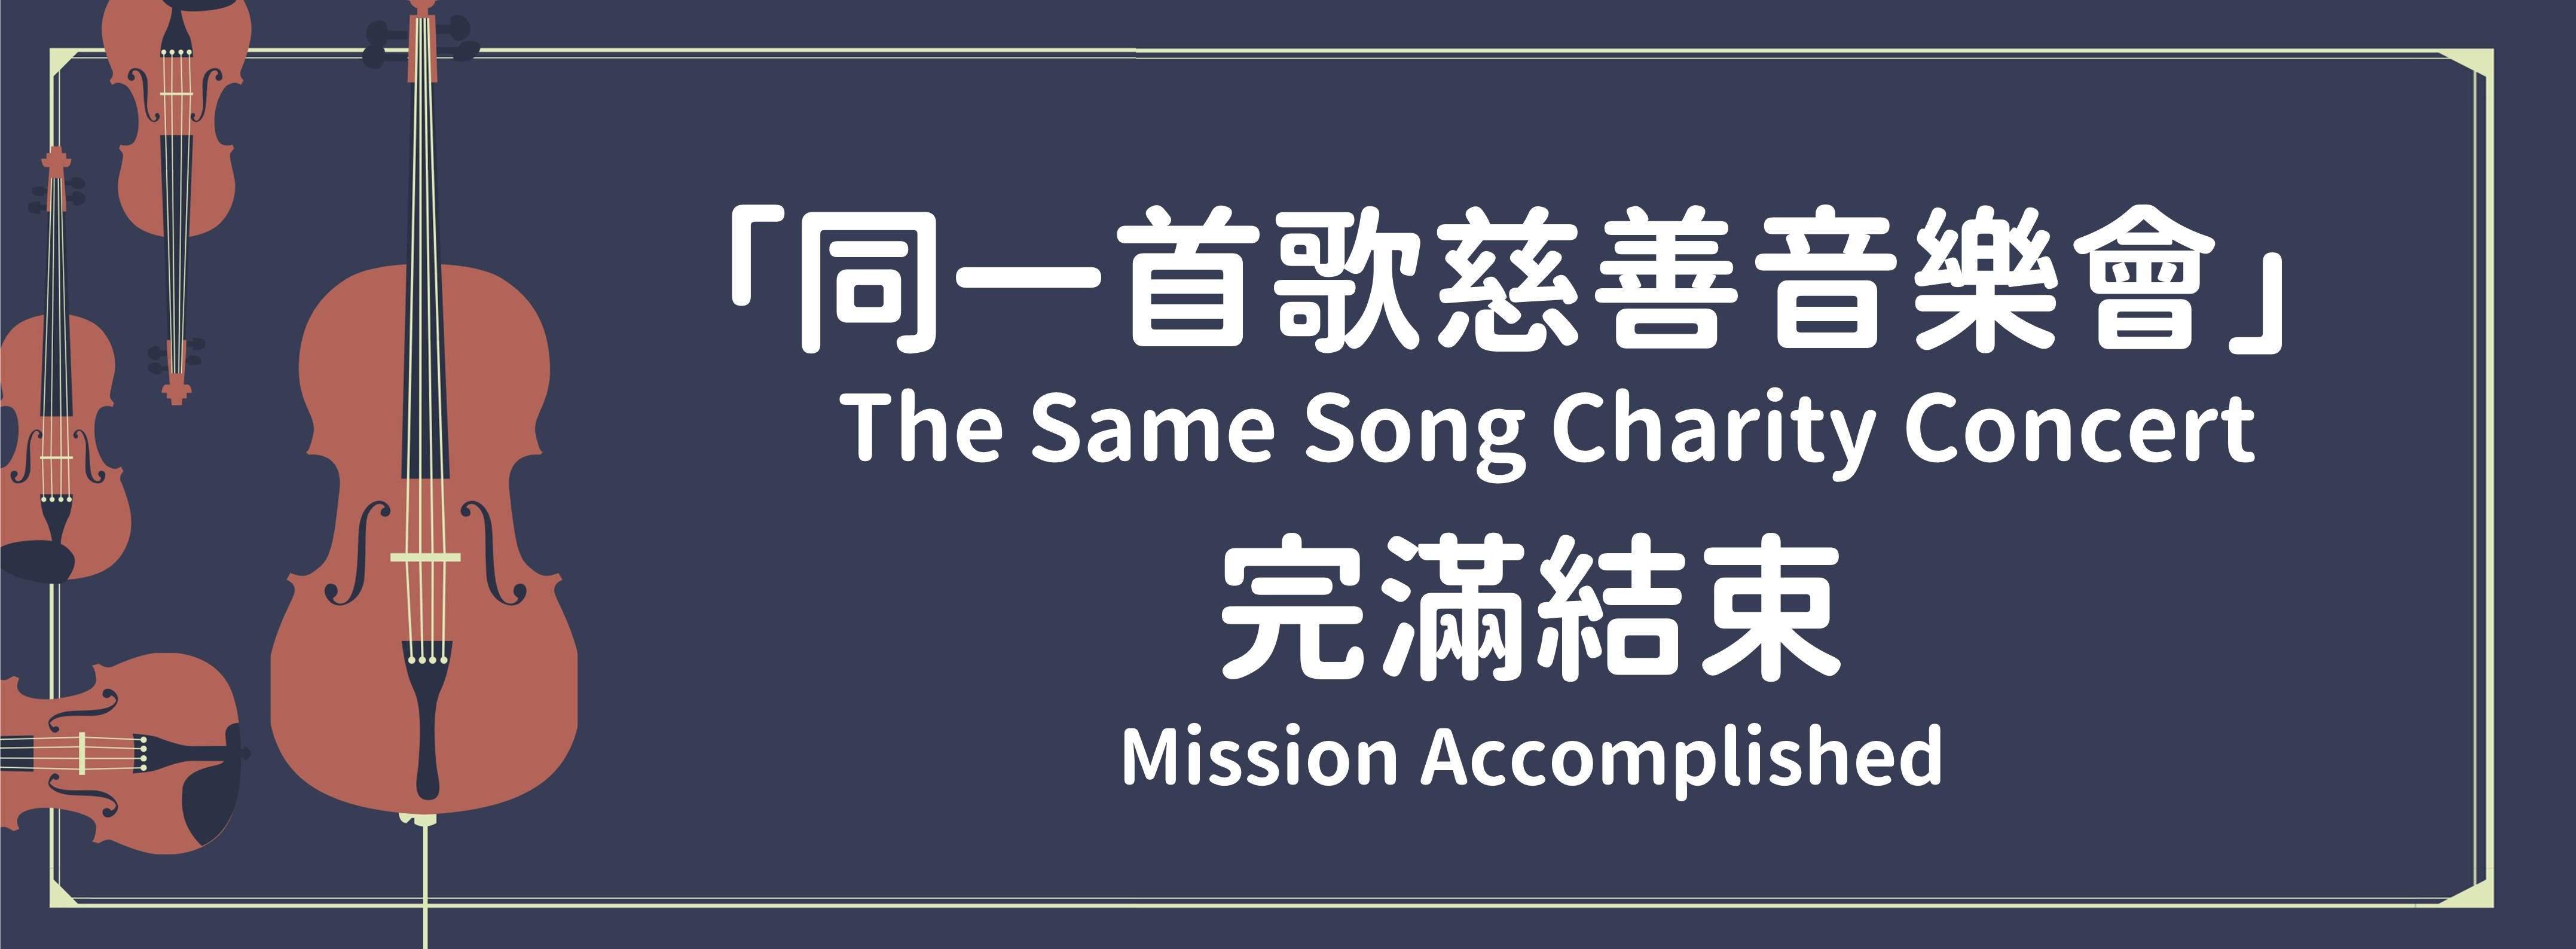 The Same Song Charity Concert Mission Accomplished